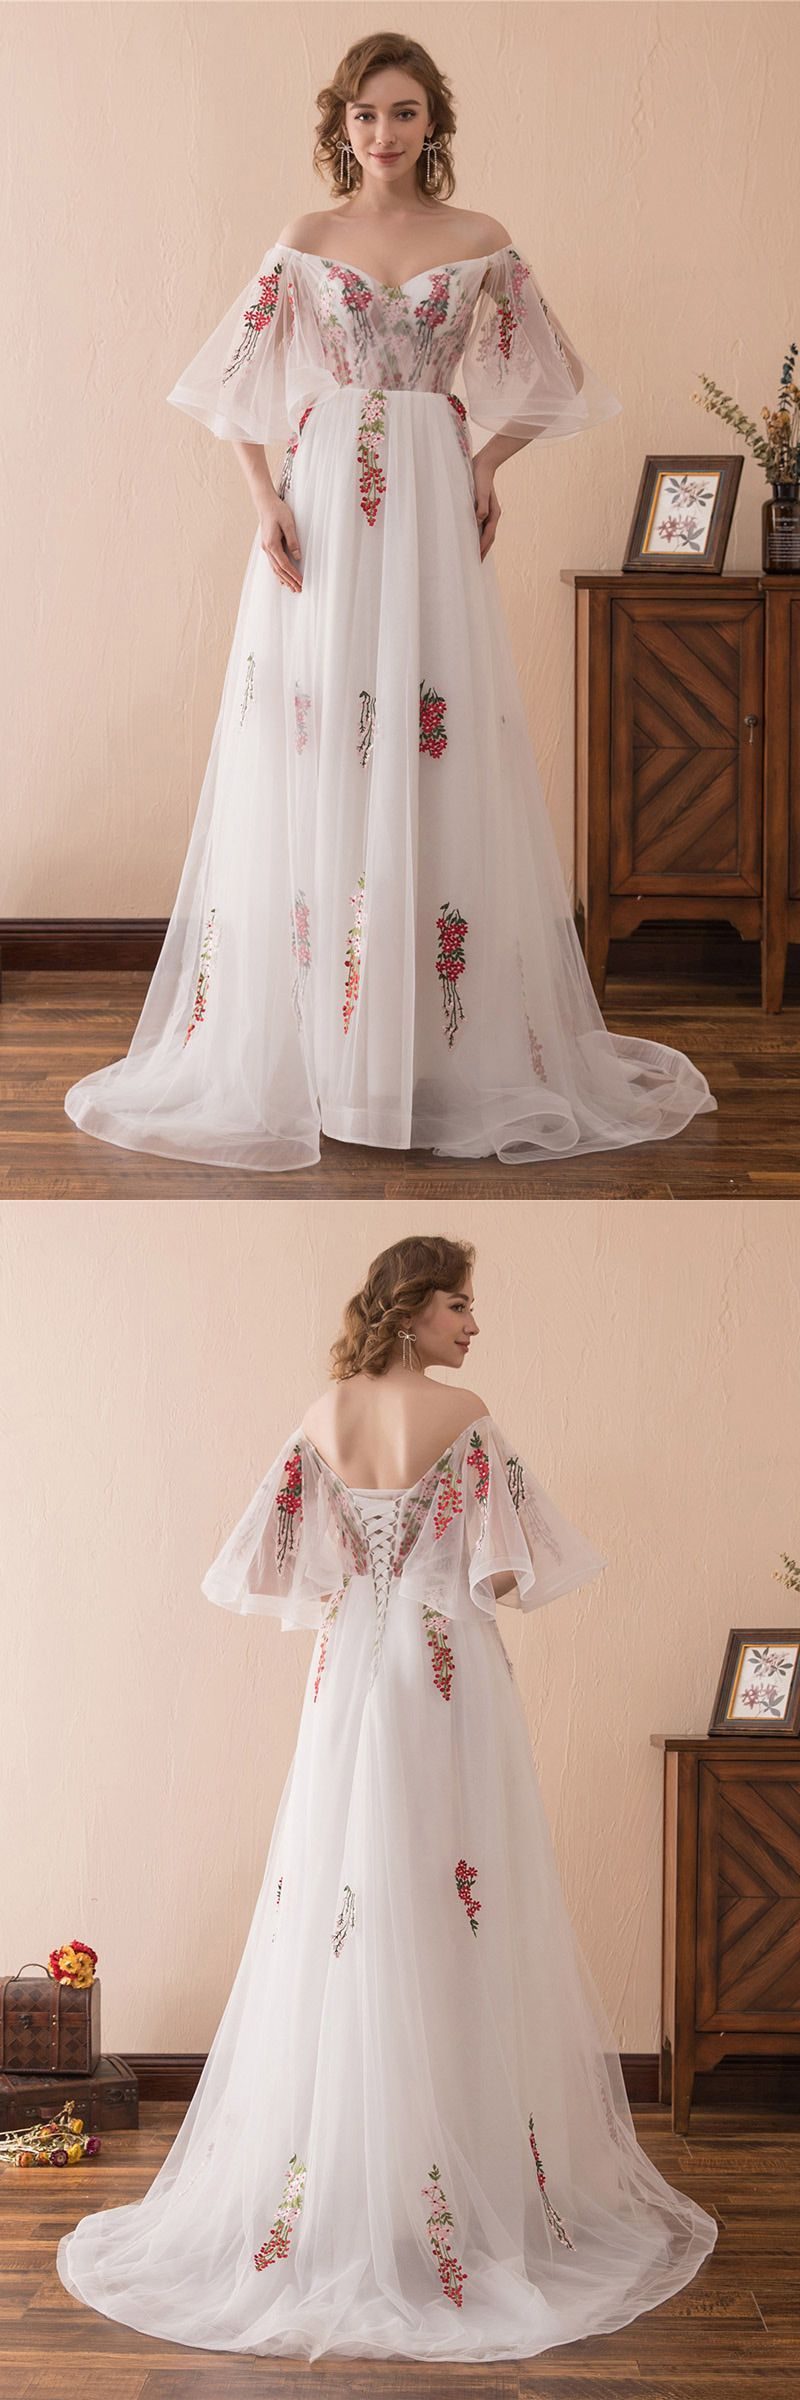 Fairy Tale Off The Shoulder Puffy Prom Dress With Color Embroidery ...